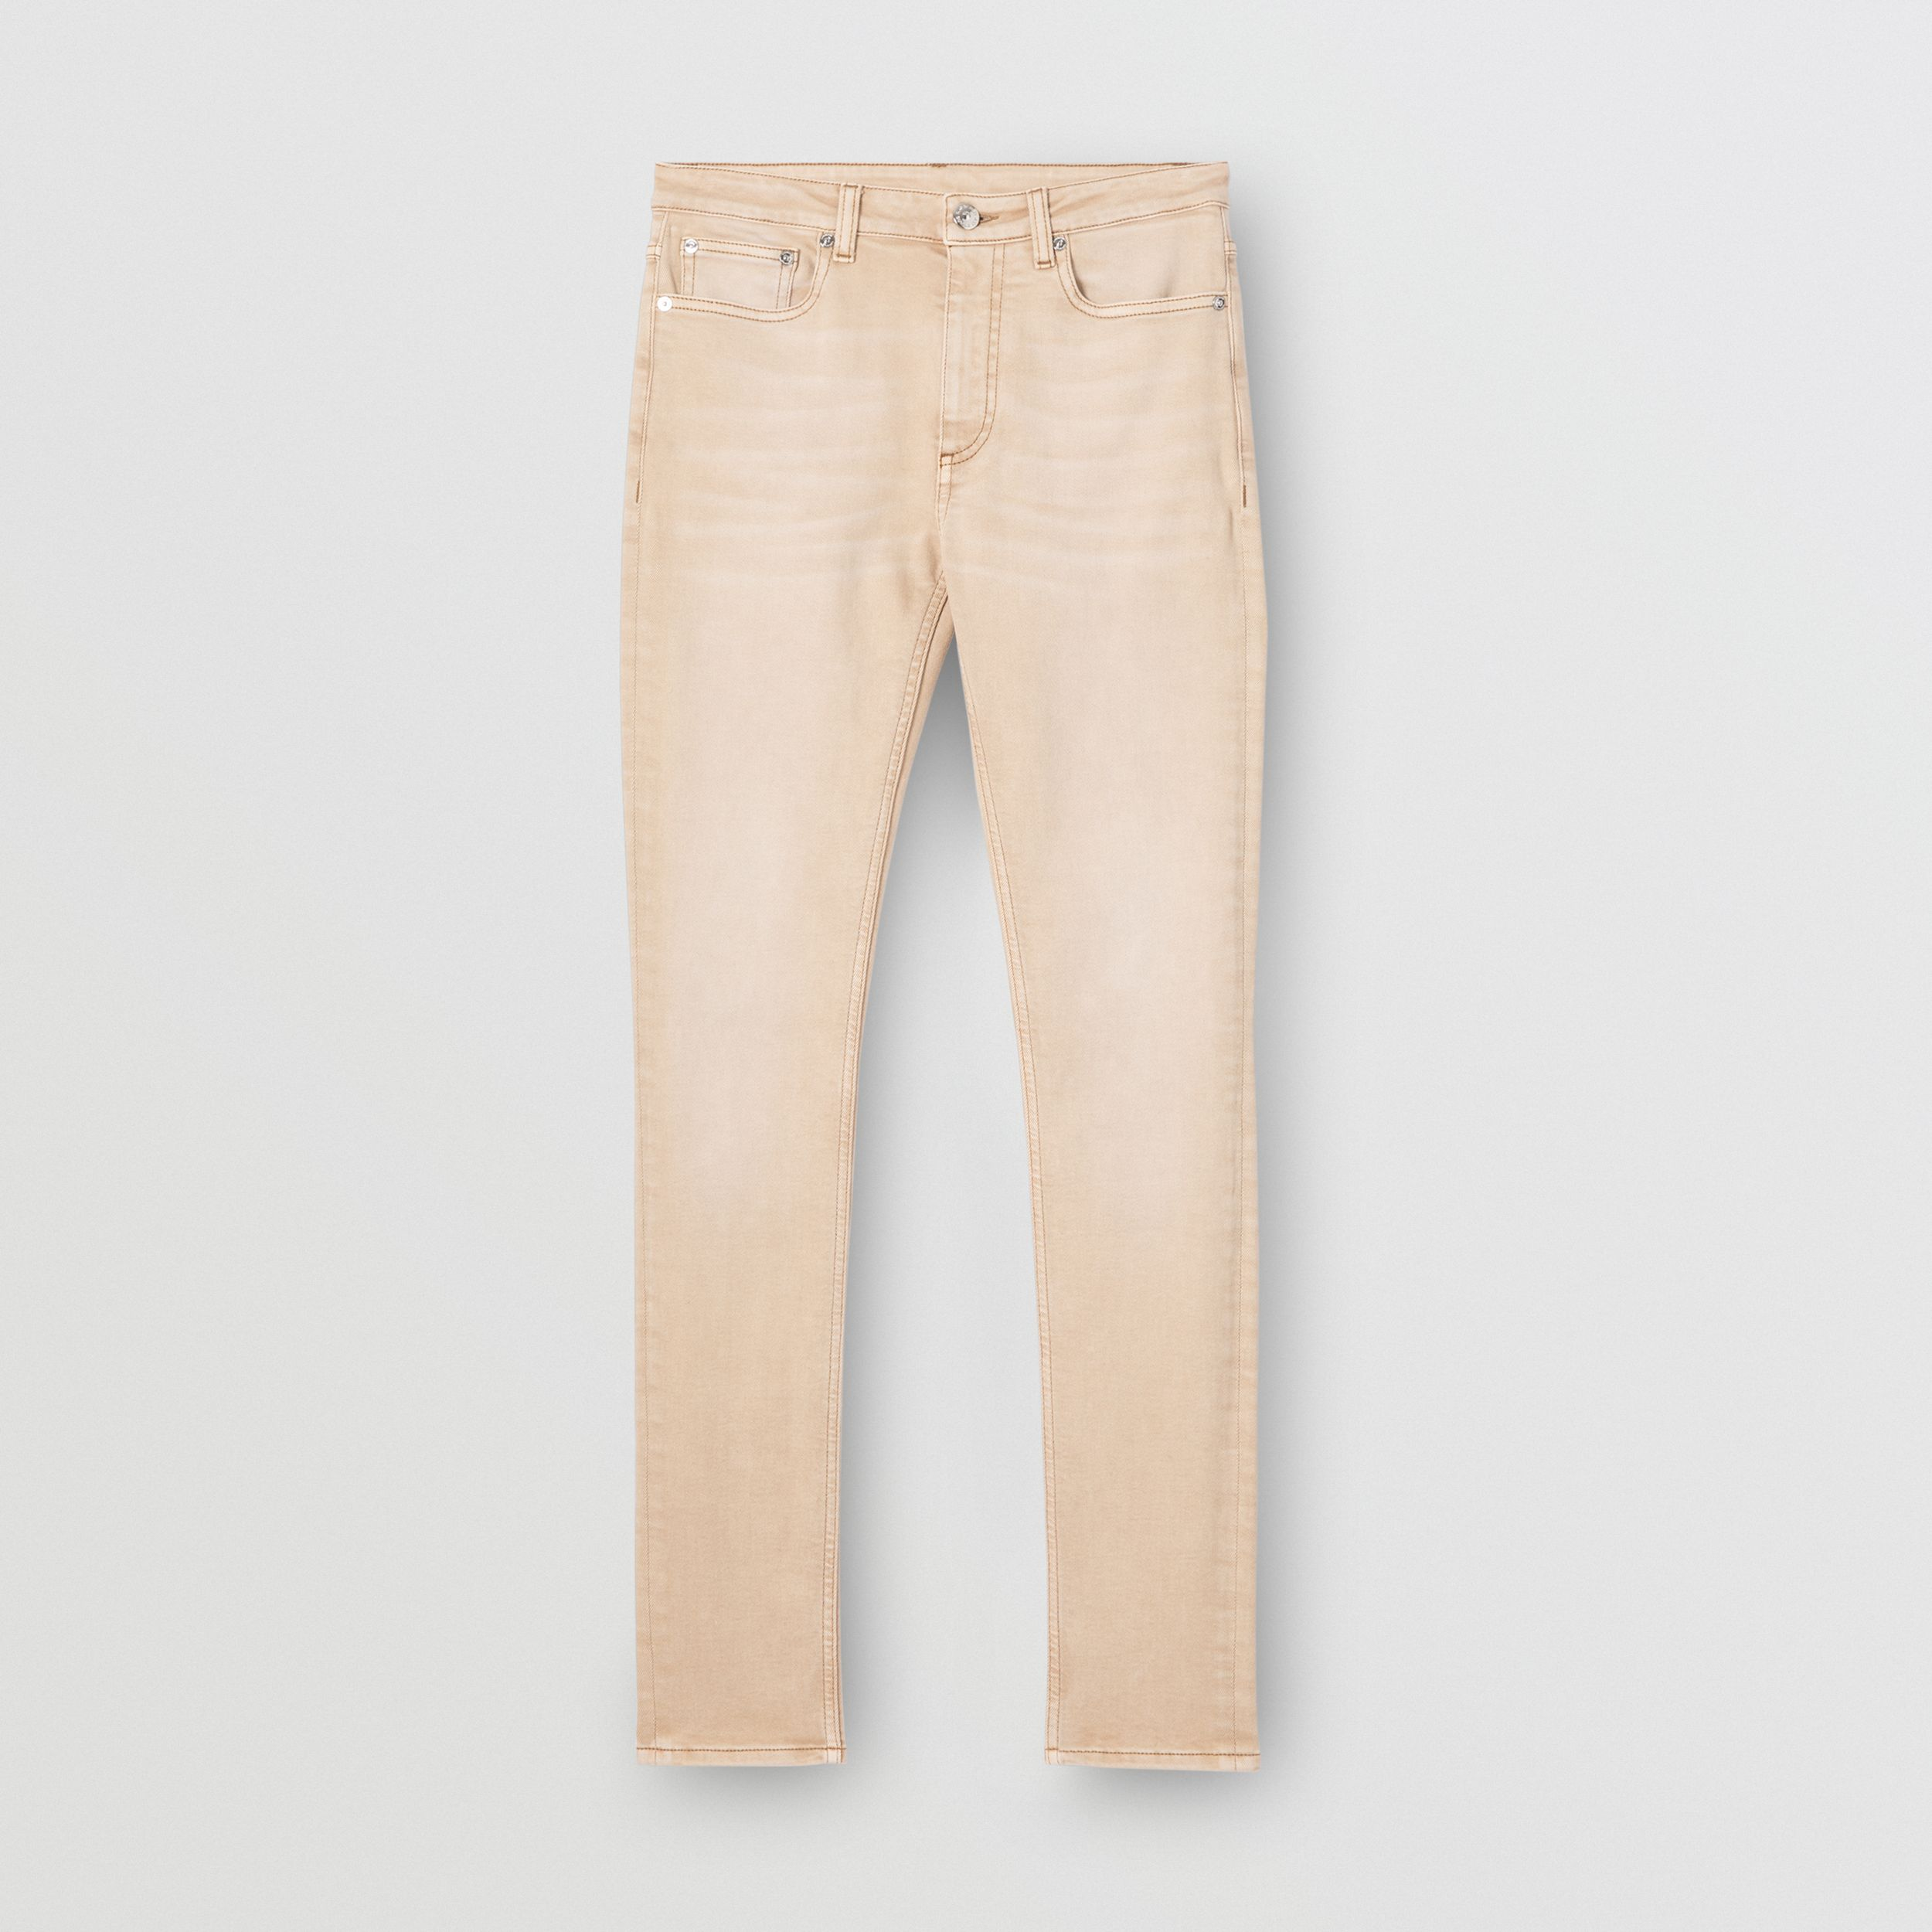 Skinny Fit Washed Japanese Denim Jeans in Honey - Women | Burberry Hong Kong S.A.R. - 4